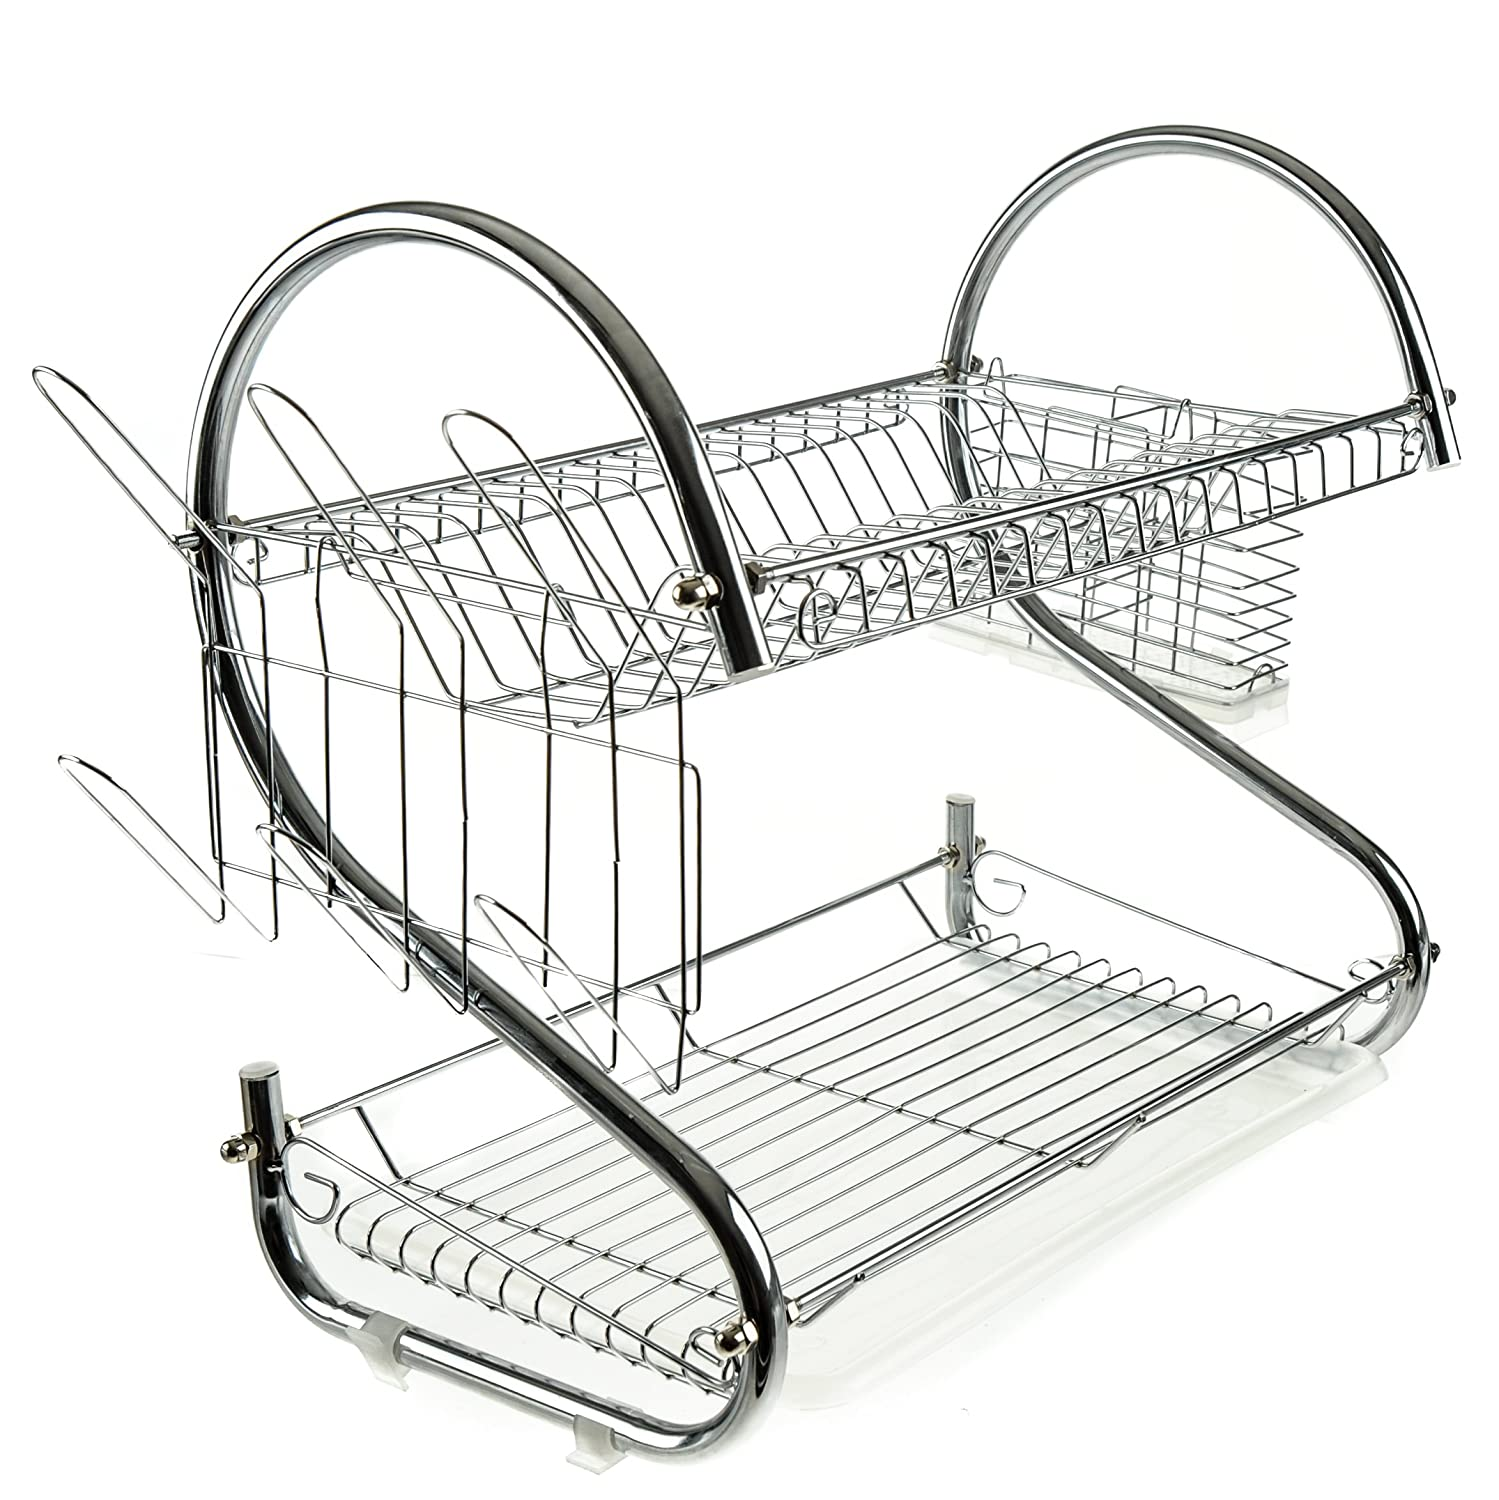 Handi-Ware Dish Drainer Rack - Two Tier - Chrome Plated Steel - Modern Design - Super S - Removable Accessories Included: Cutlery Basket, Cup Drainer, & Drip Tray - by Unity